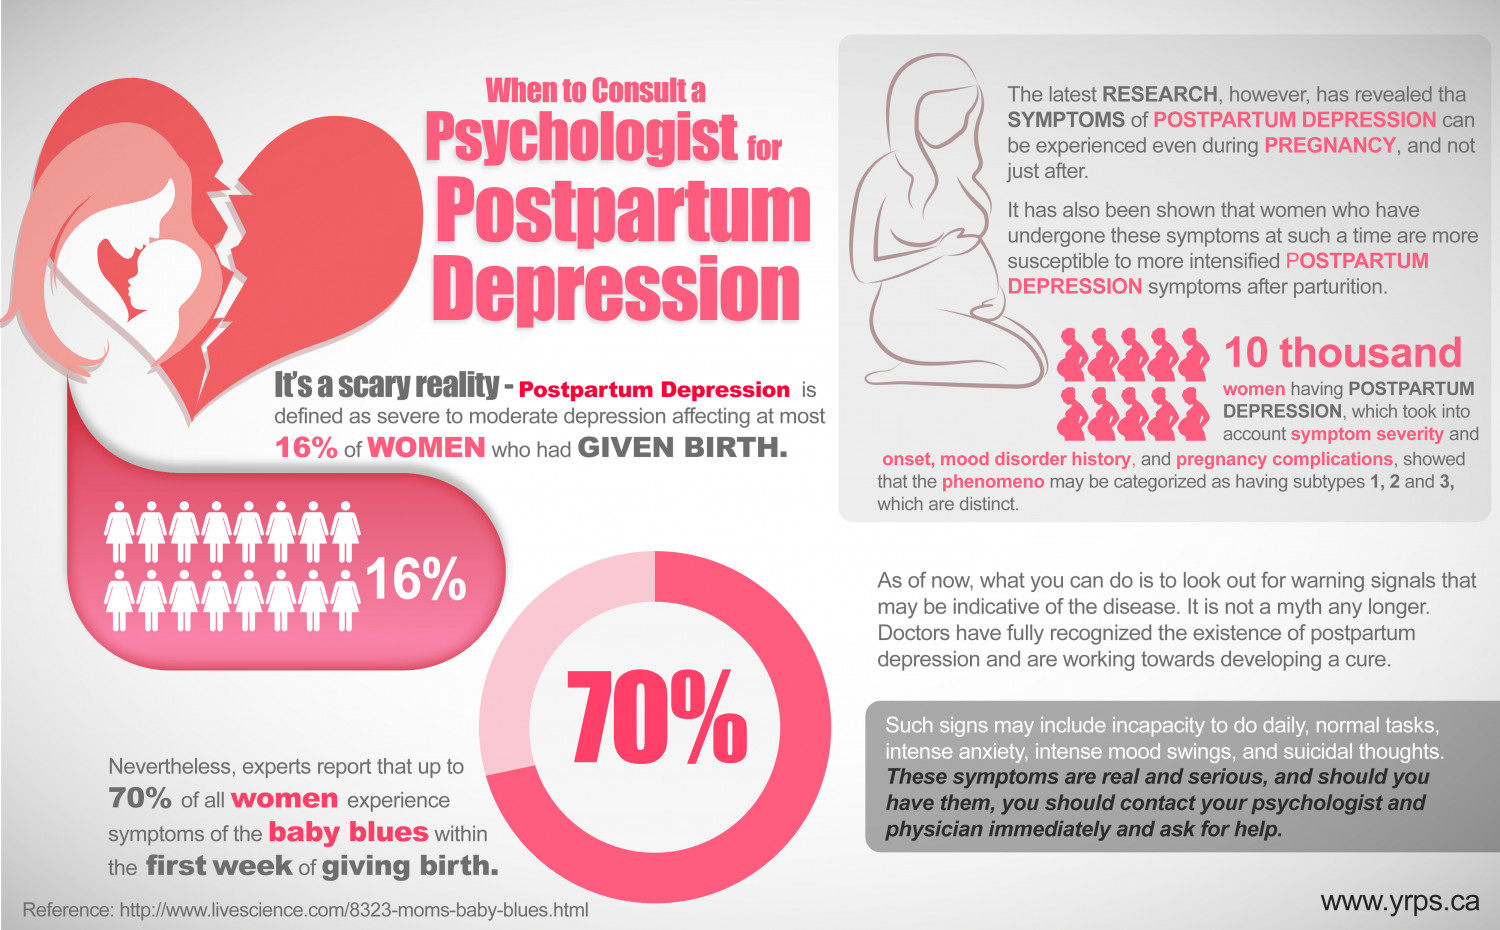 when to consult a psychologist for postpartum depression | visual.ly